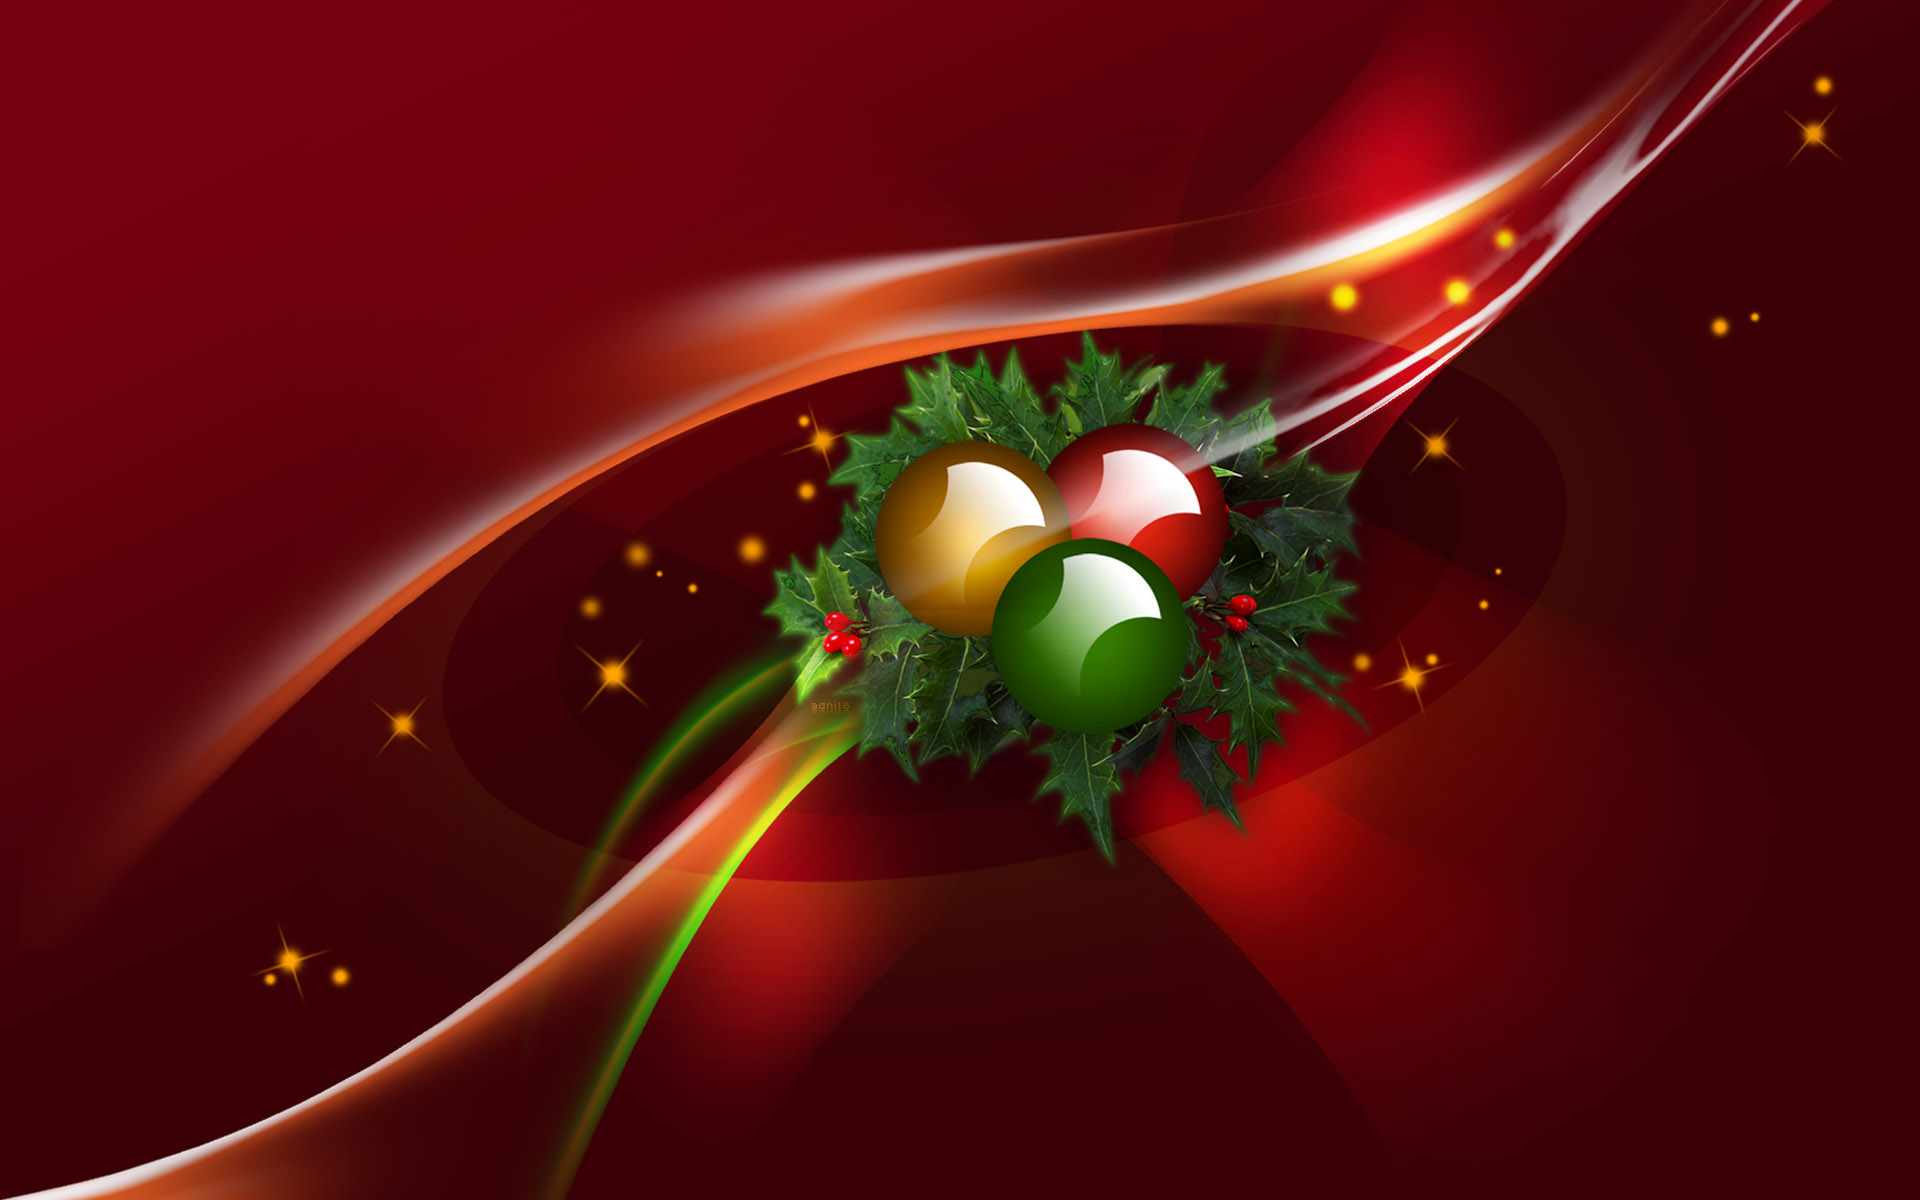 Christmas wallpaper high definition 26959